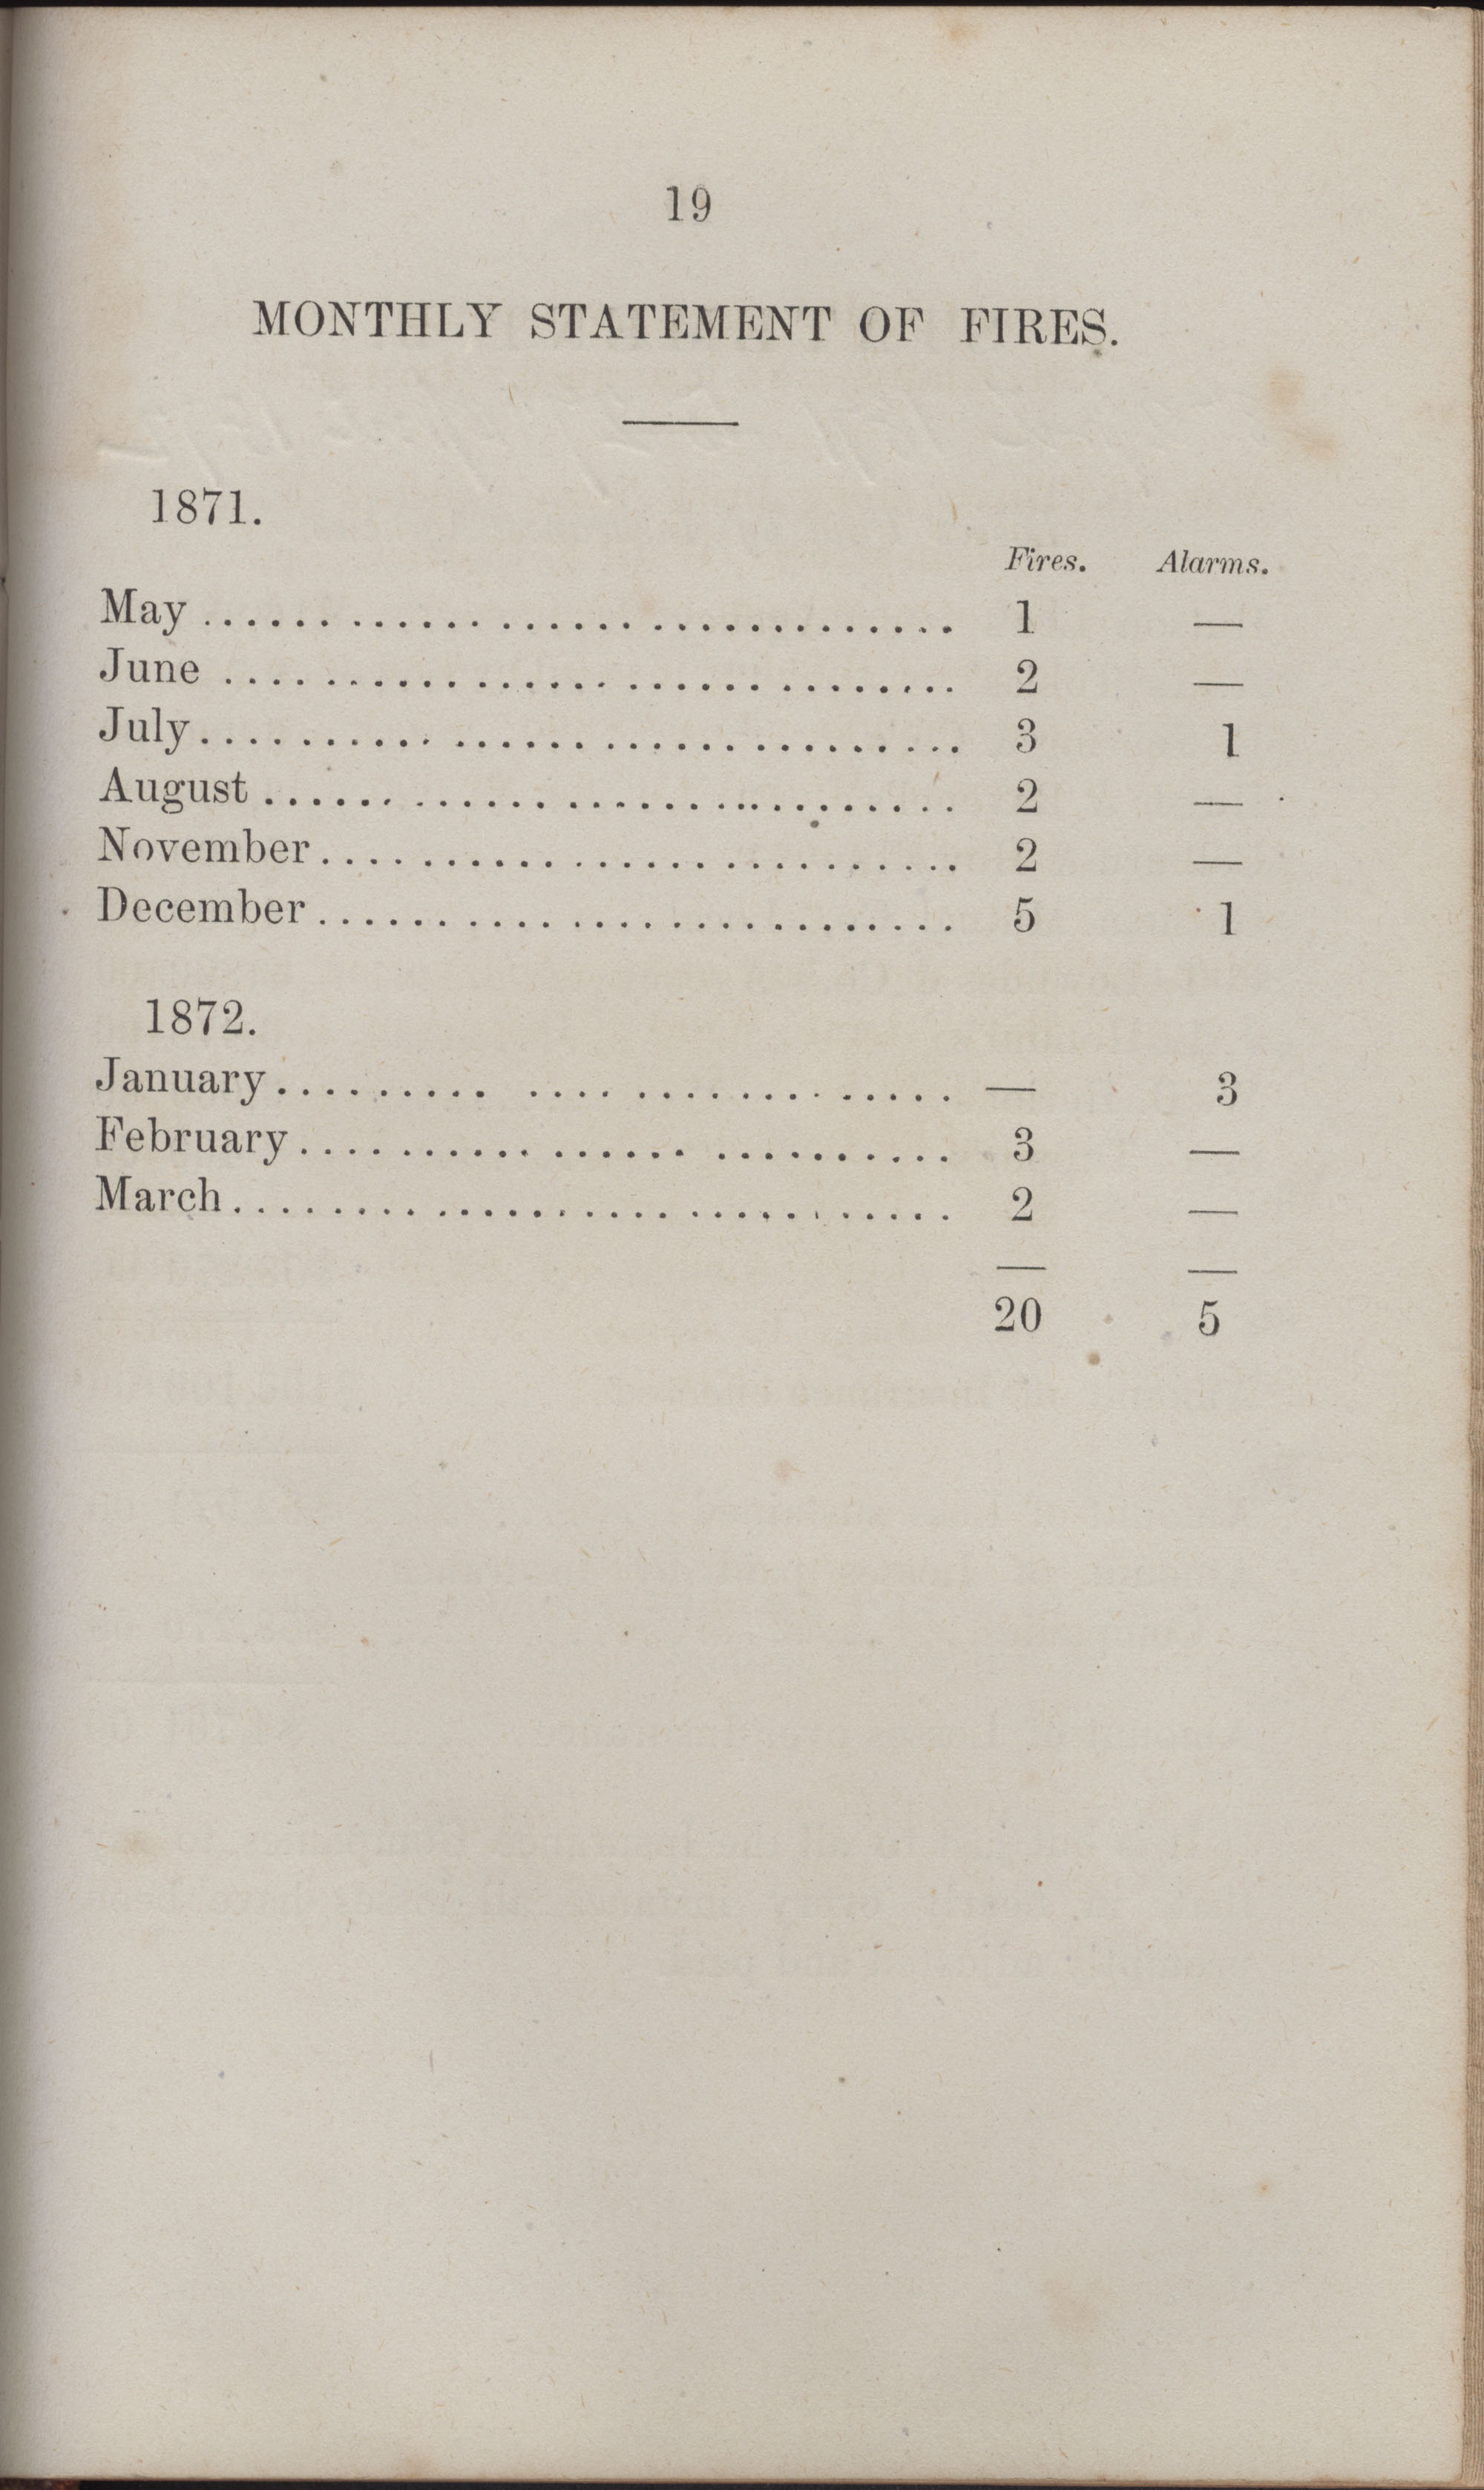 Annual Report of the Chief of the Fire Department of the City of Charleston, page 414